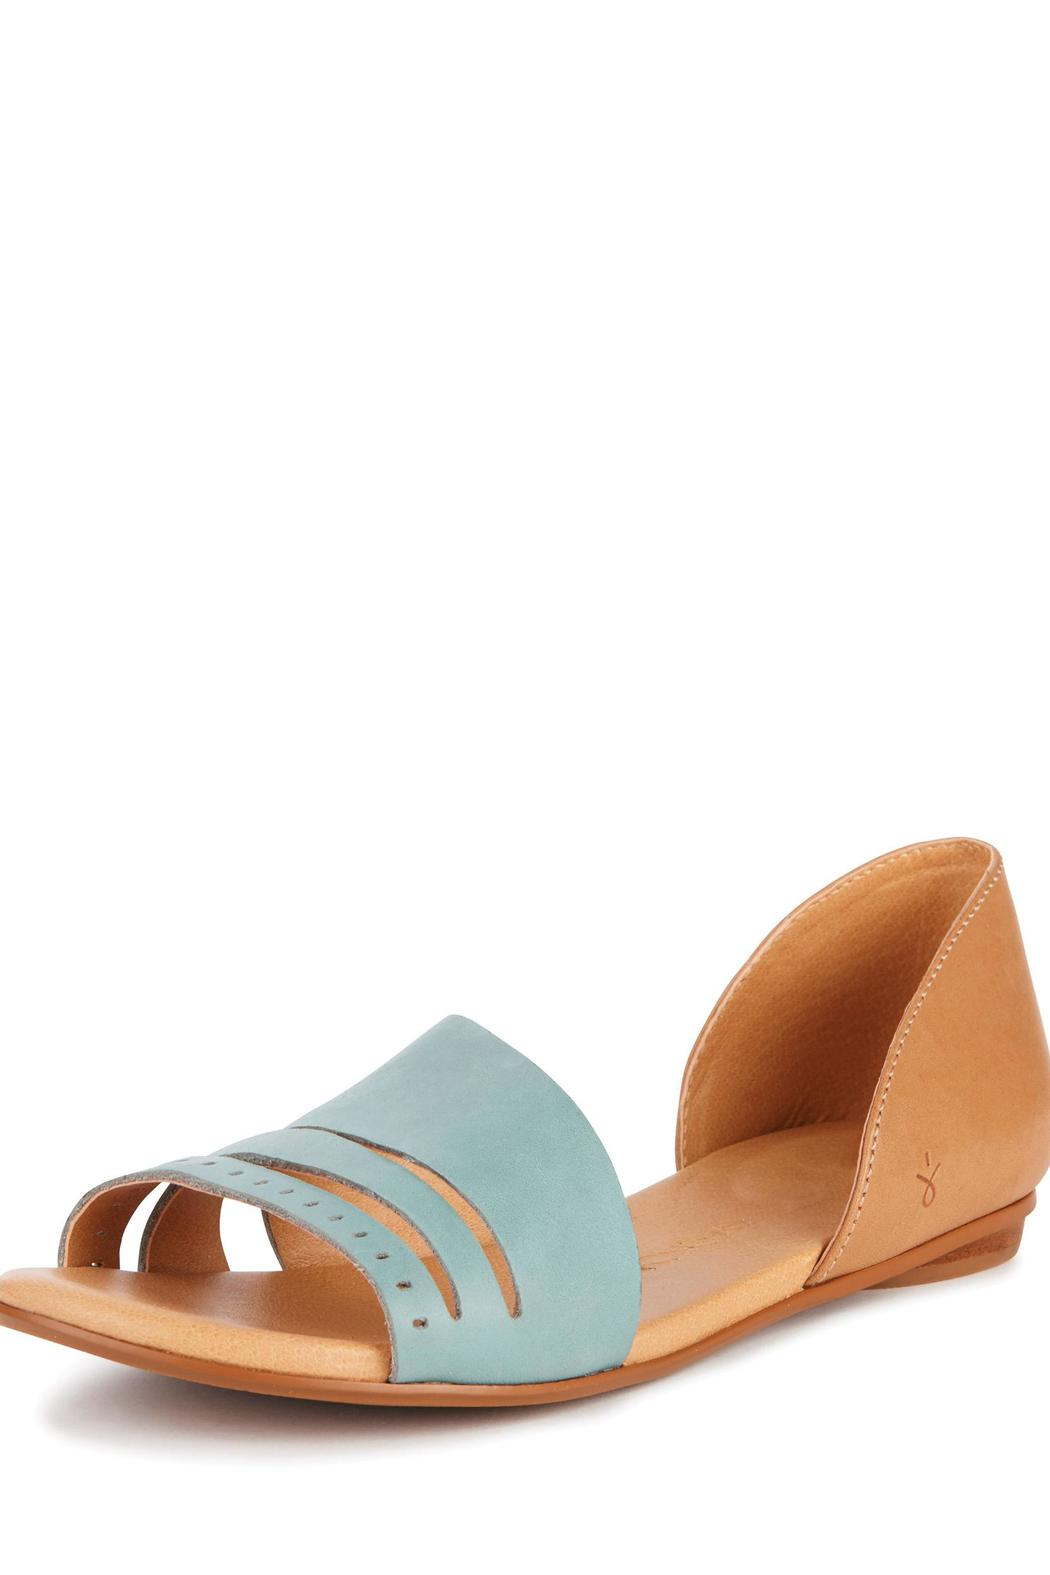 Emu Flat Summer Sandal From United Kingdom By The White